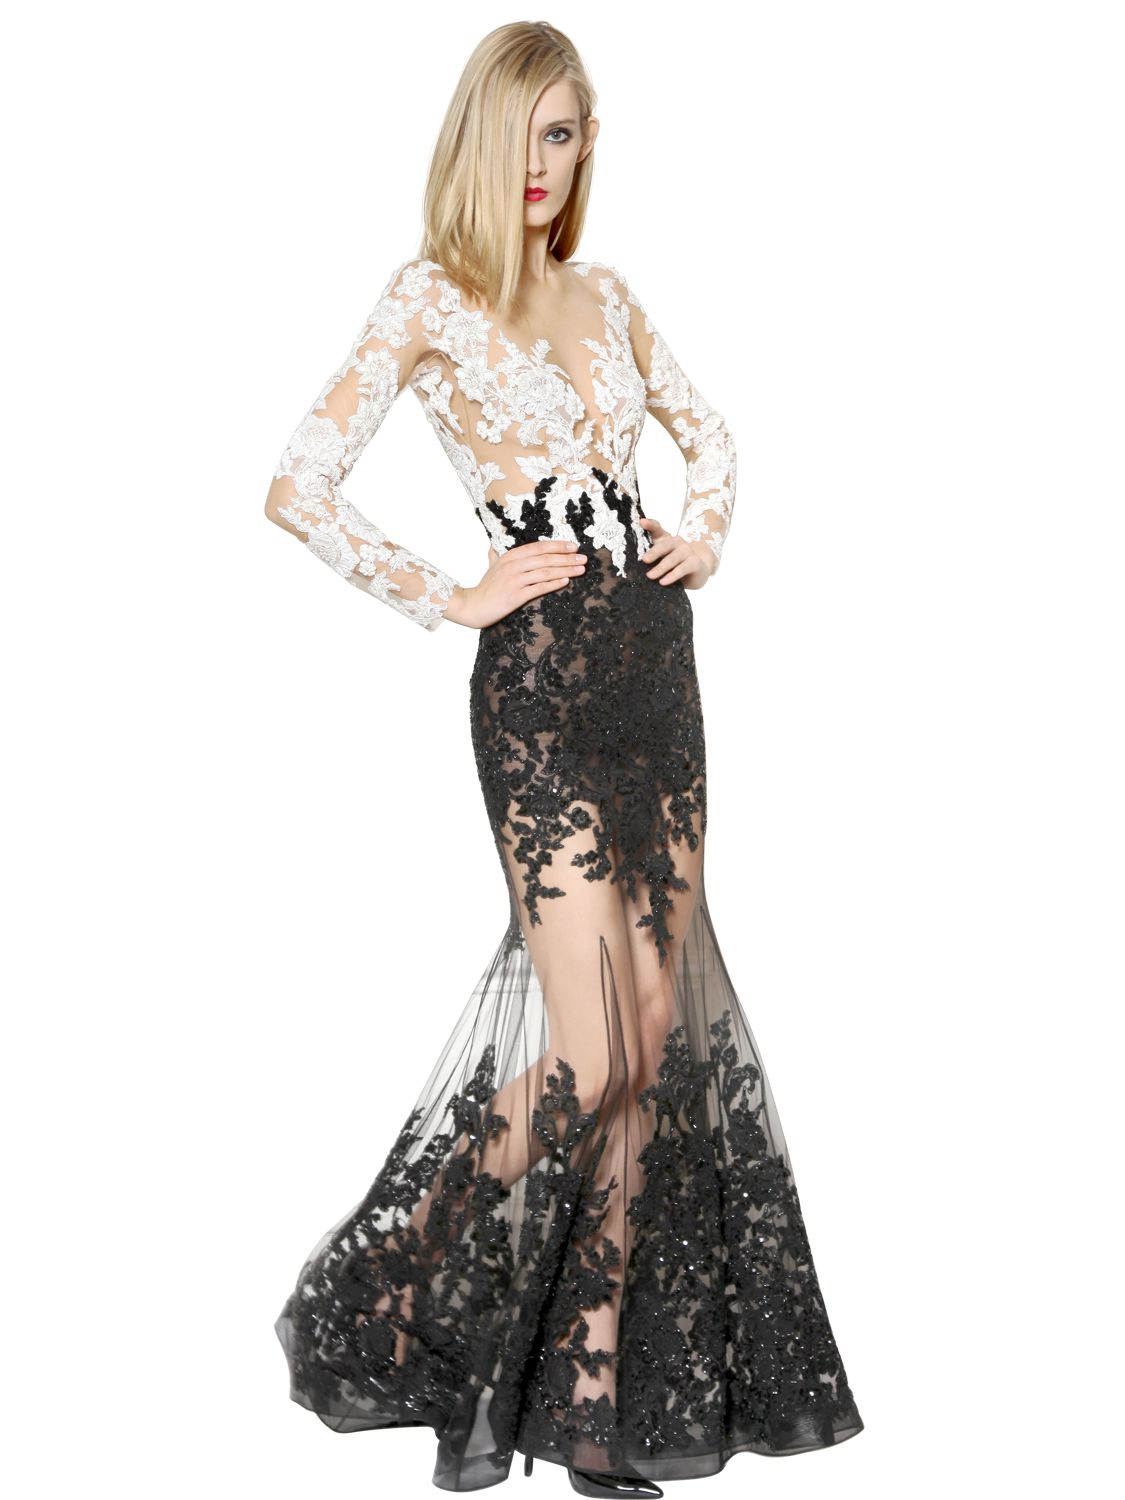 d4a86b89708 Zuhair Murad Embellished Lace   Tulle Mermaid Dress in Black - Lyst